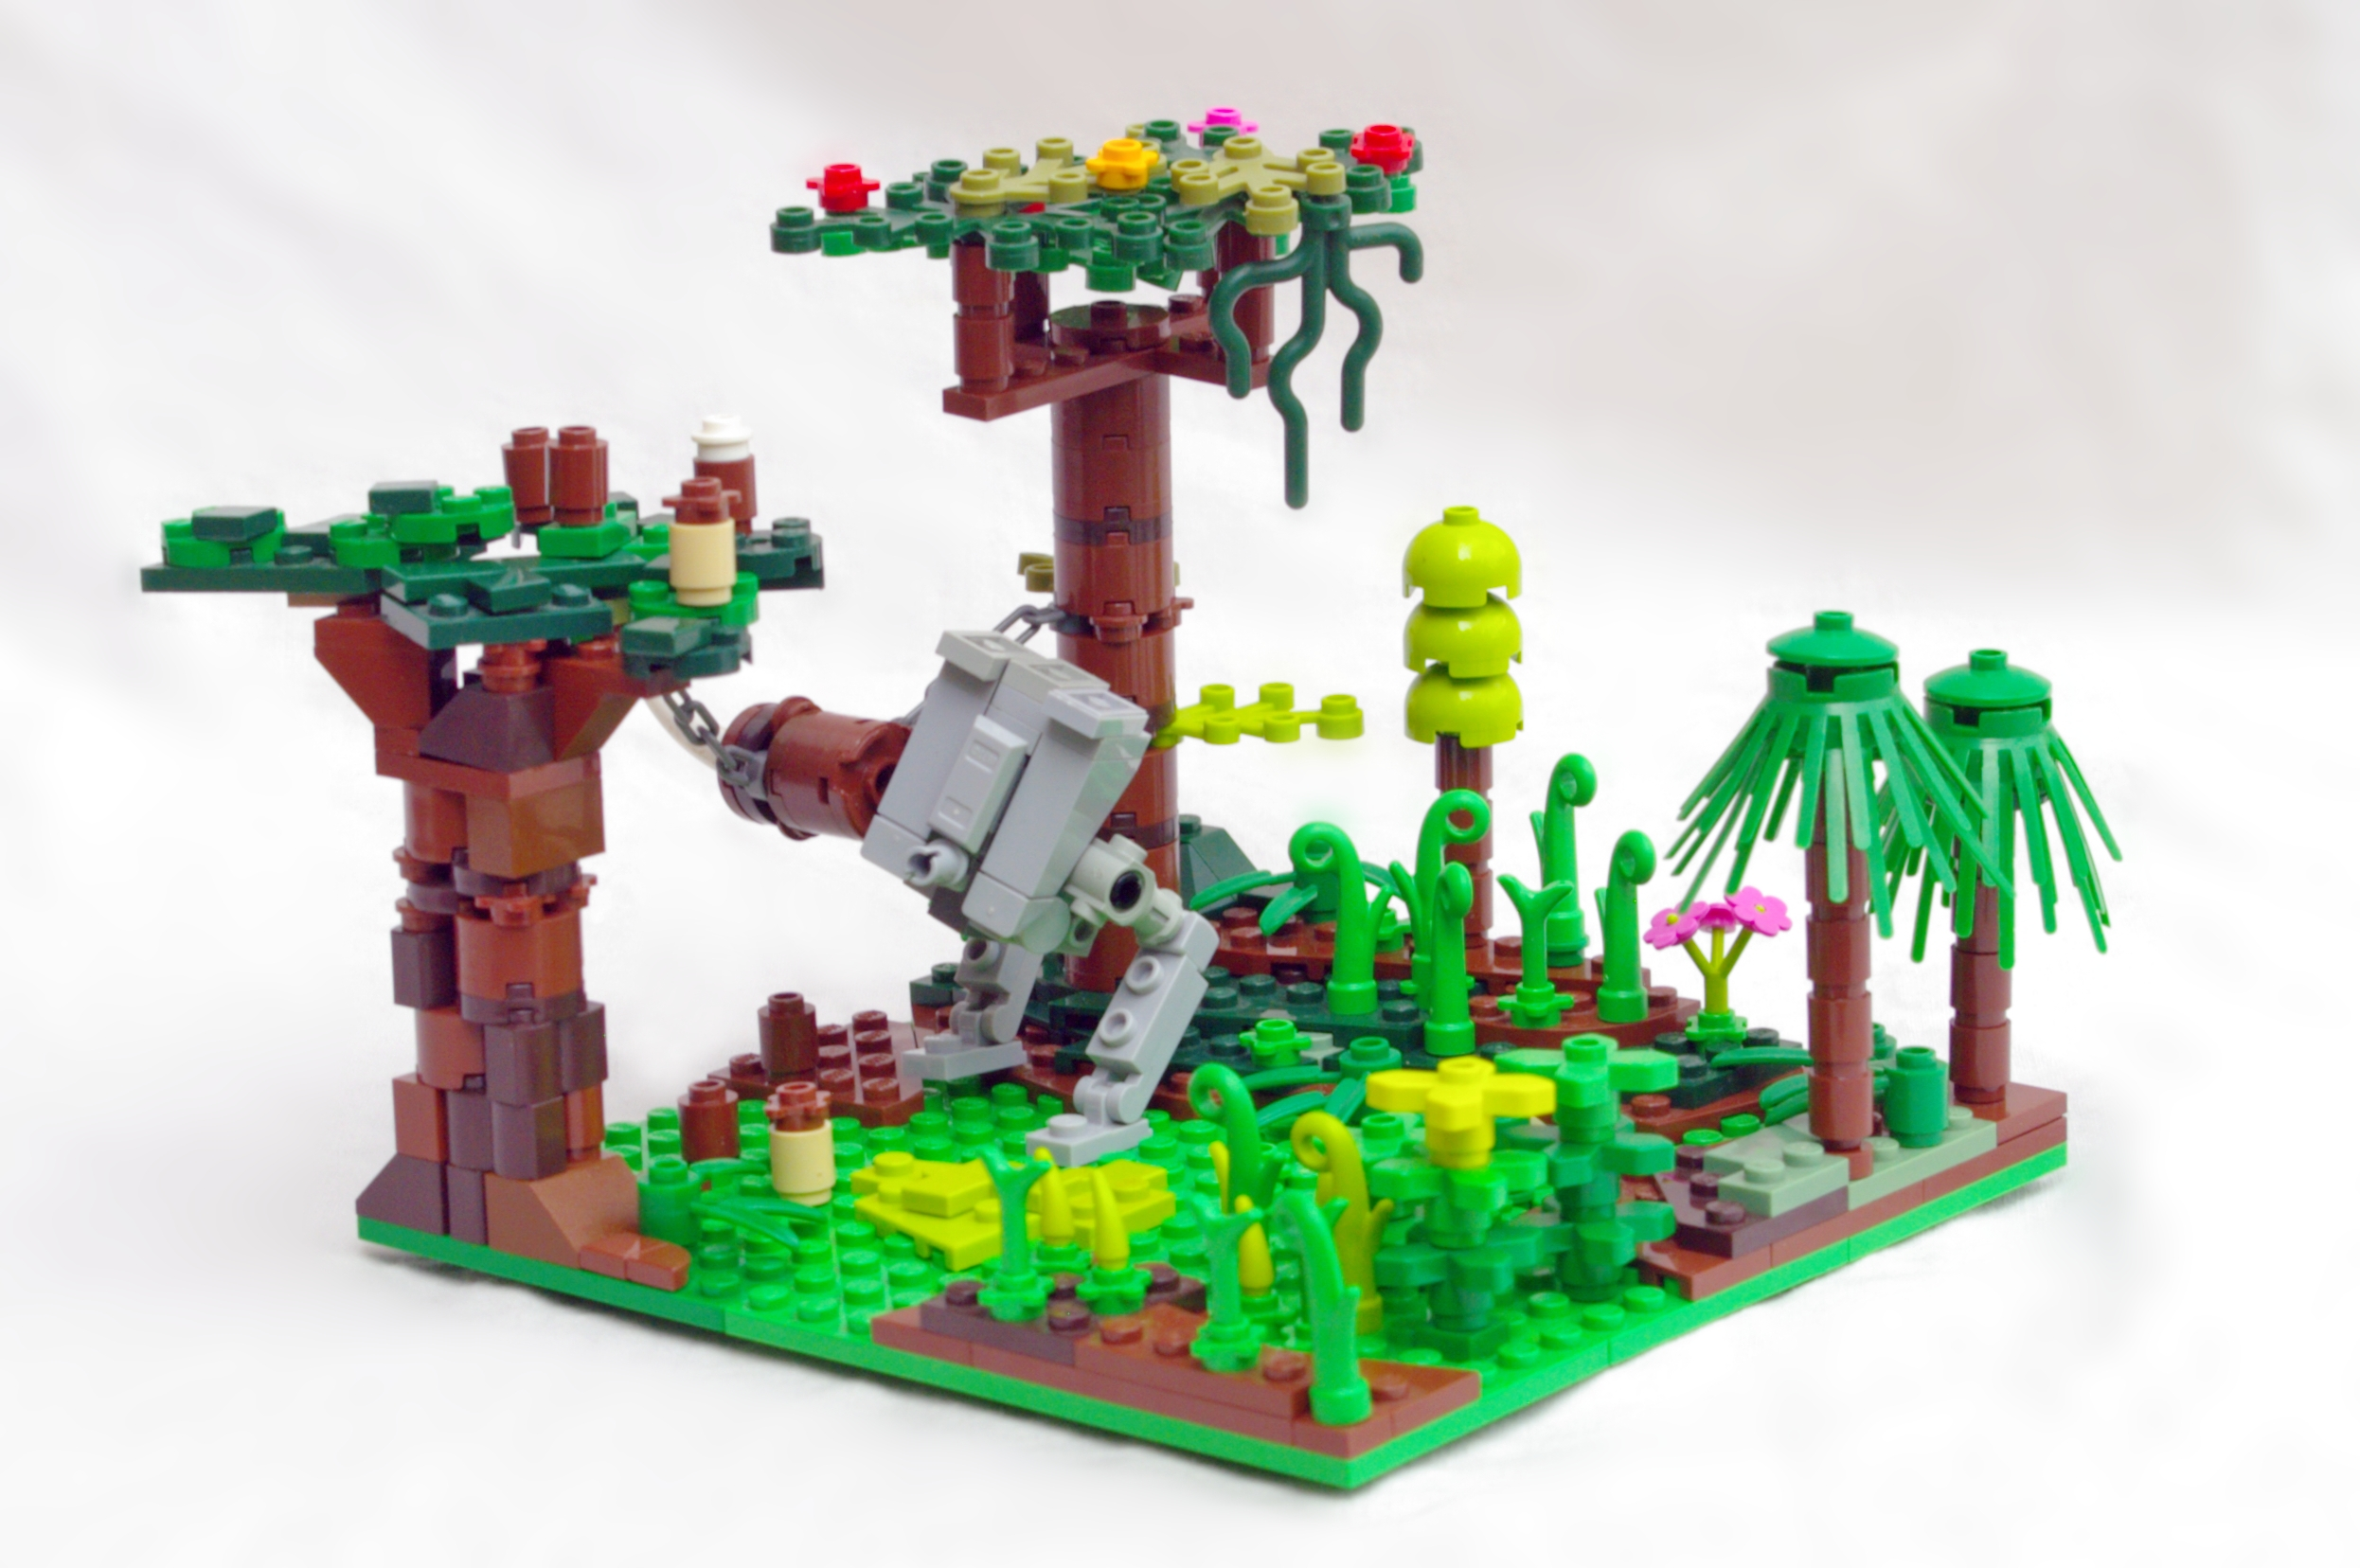 Concurs Microscale Movie Scenes – Creatia 6: Ewoks' Trap